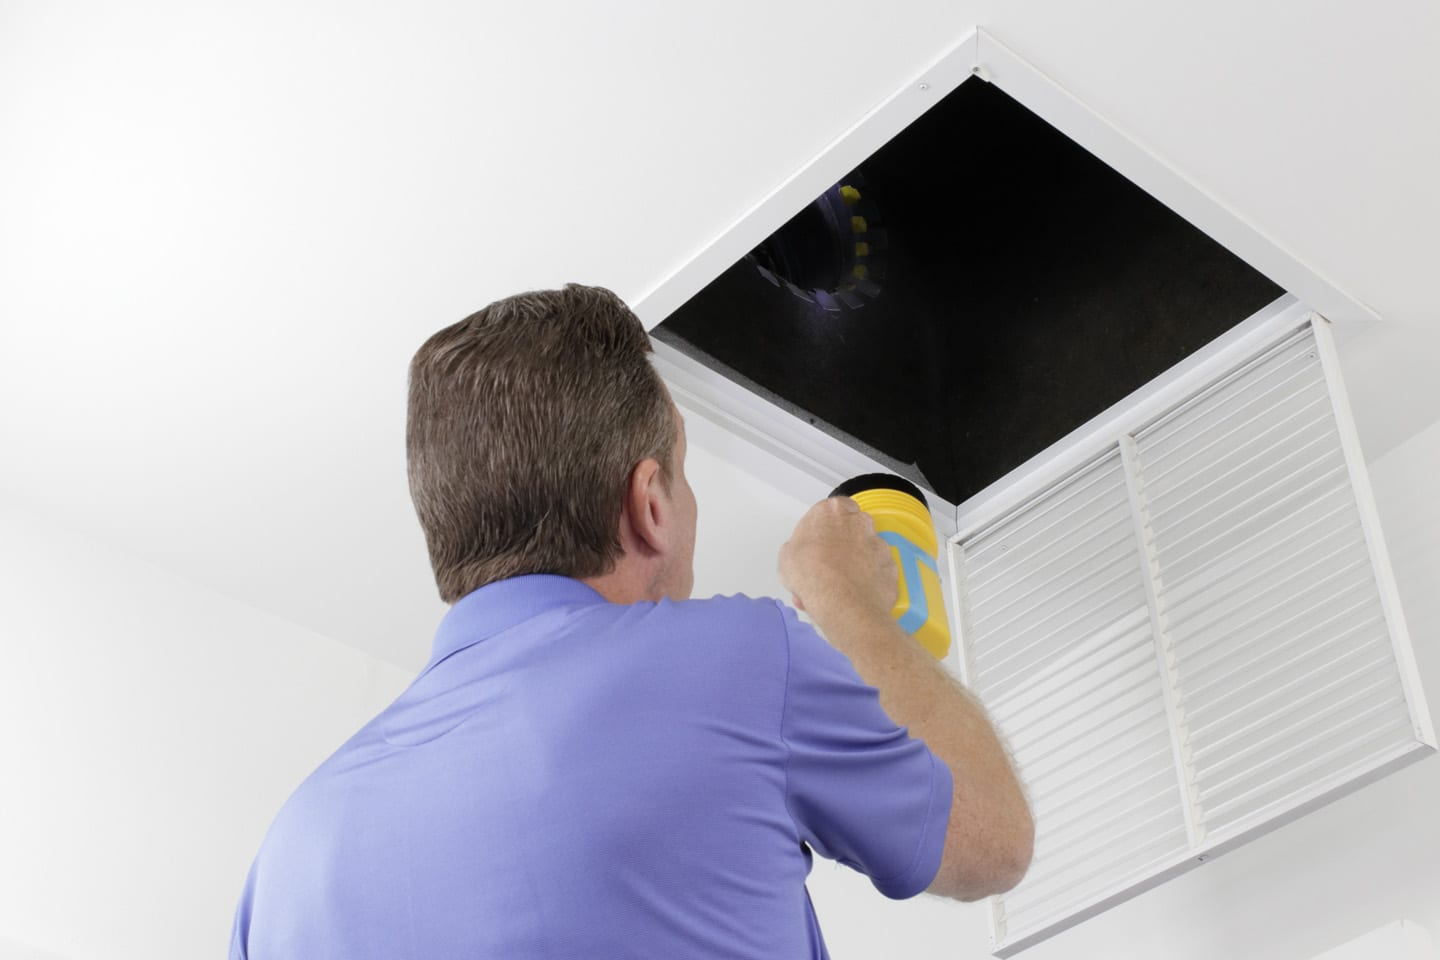 furnace maintenance and air ducts Granite City Illinois